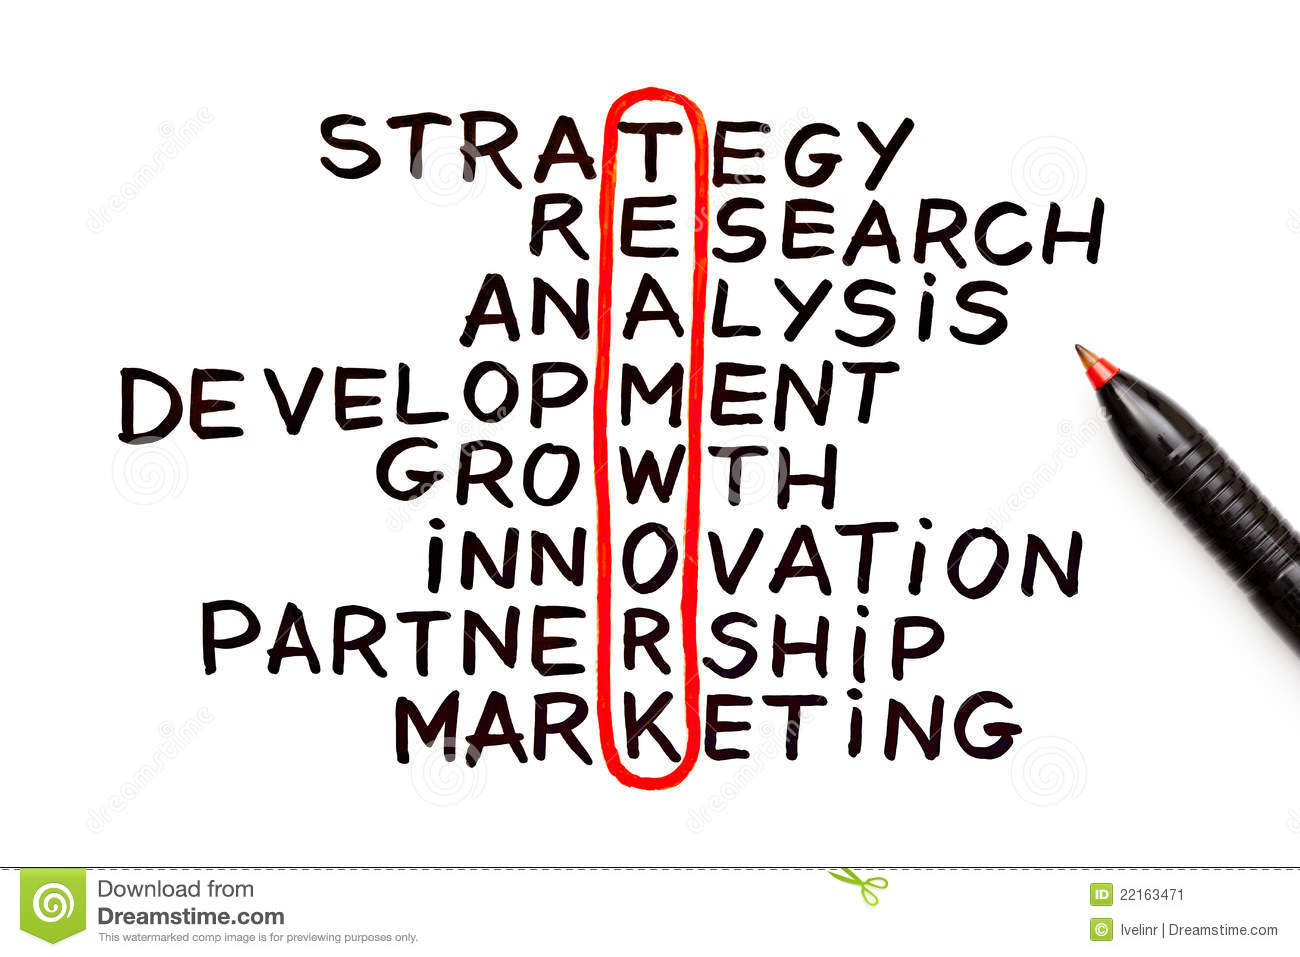 The word Teamwork highlighted with red pen in a handwritten chart.